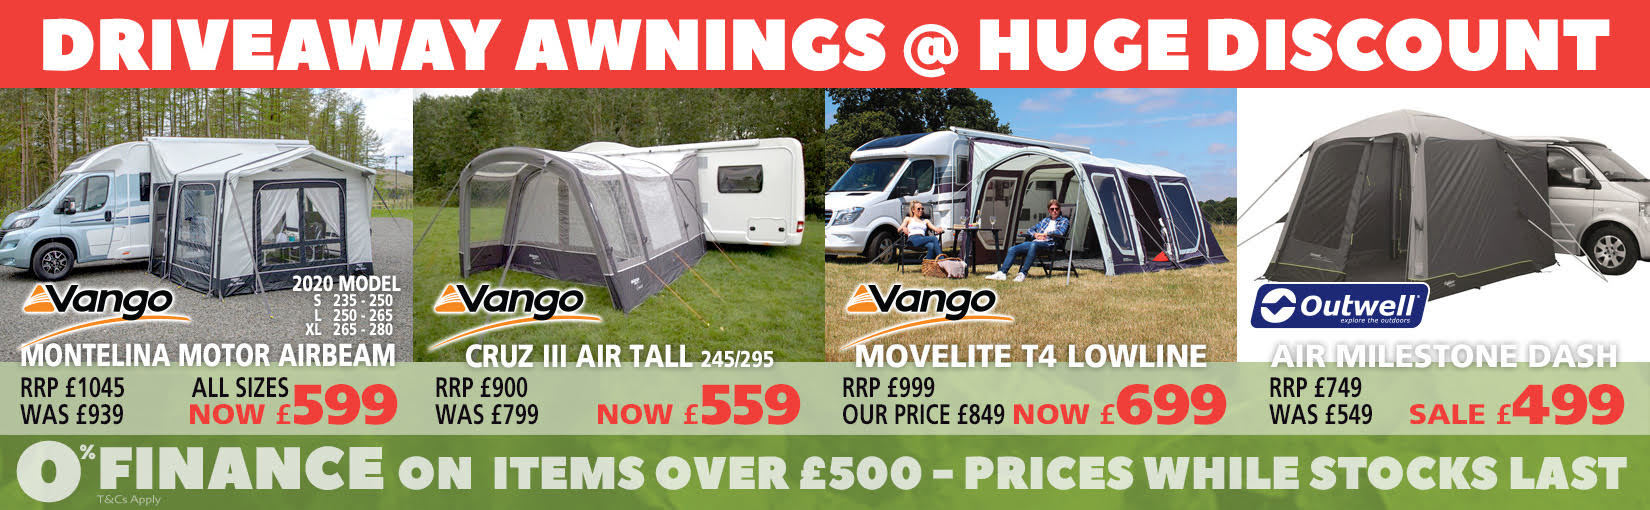 Driveaway Awnings Huge Discount